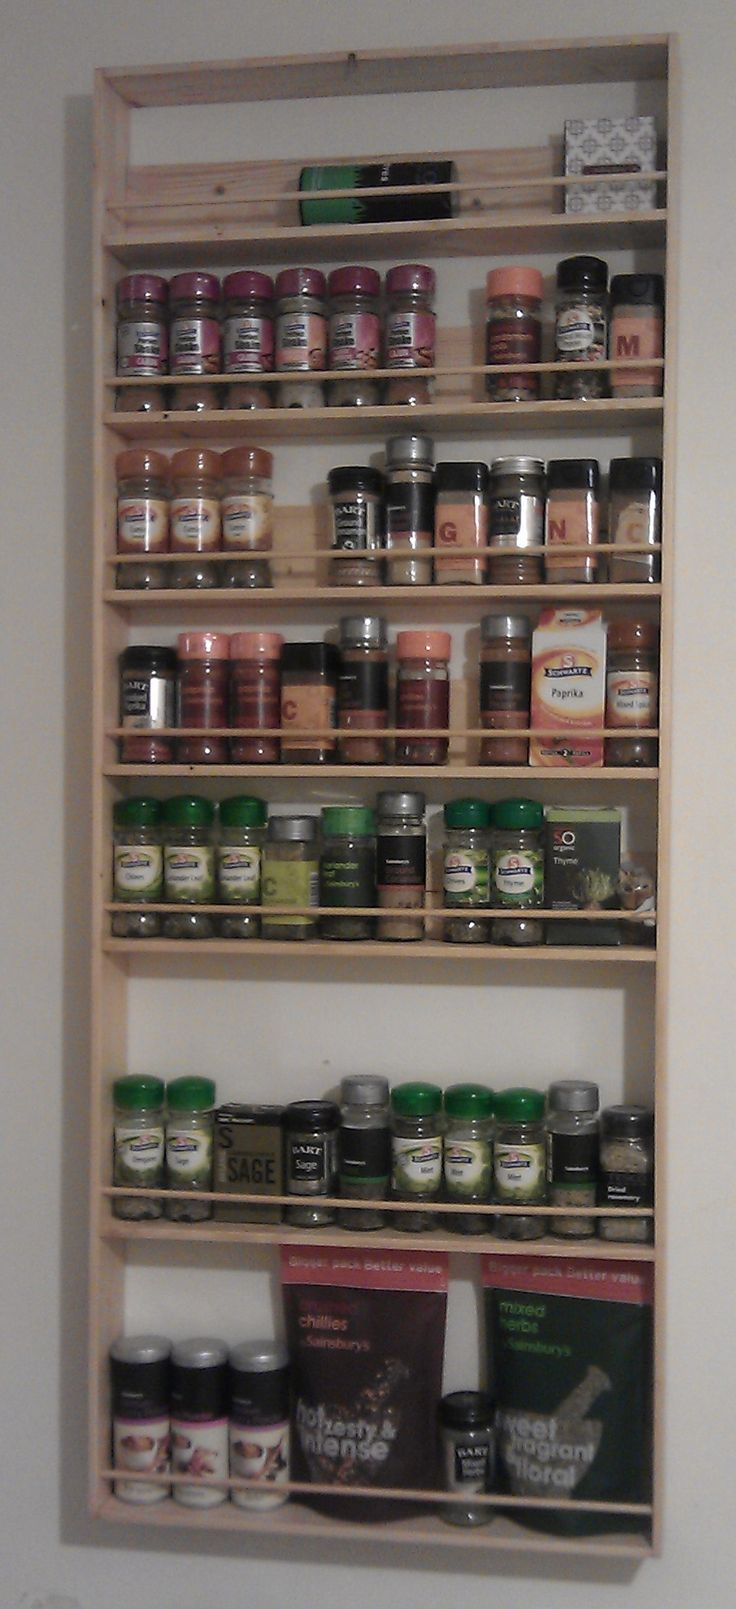 High Quality Spice Rack   I Want Something Like This To Hang N The Side Of The Cabinet  By The Window In The Kitchen. Nice Design